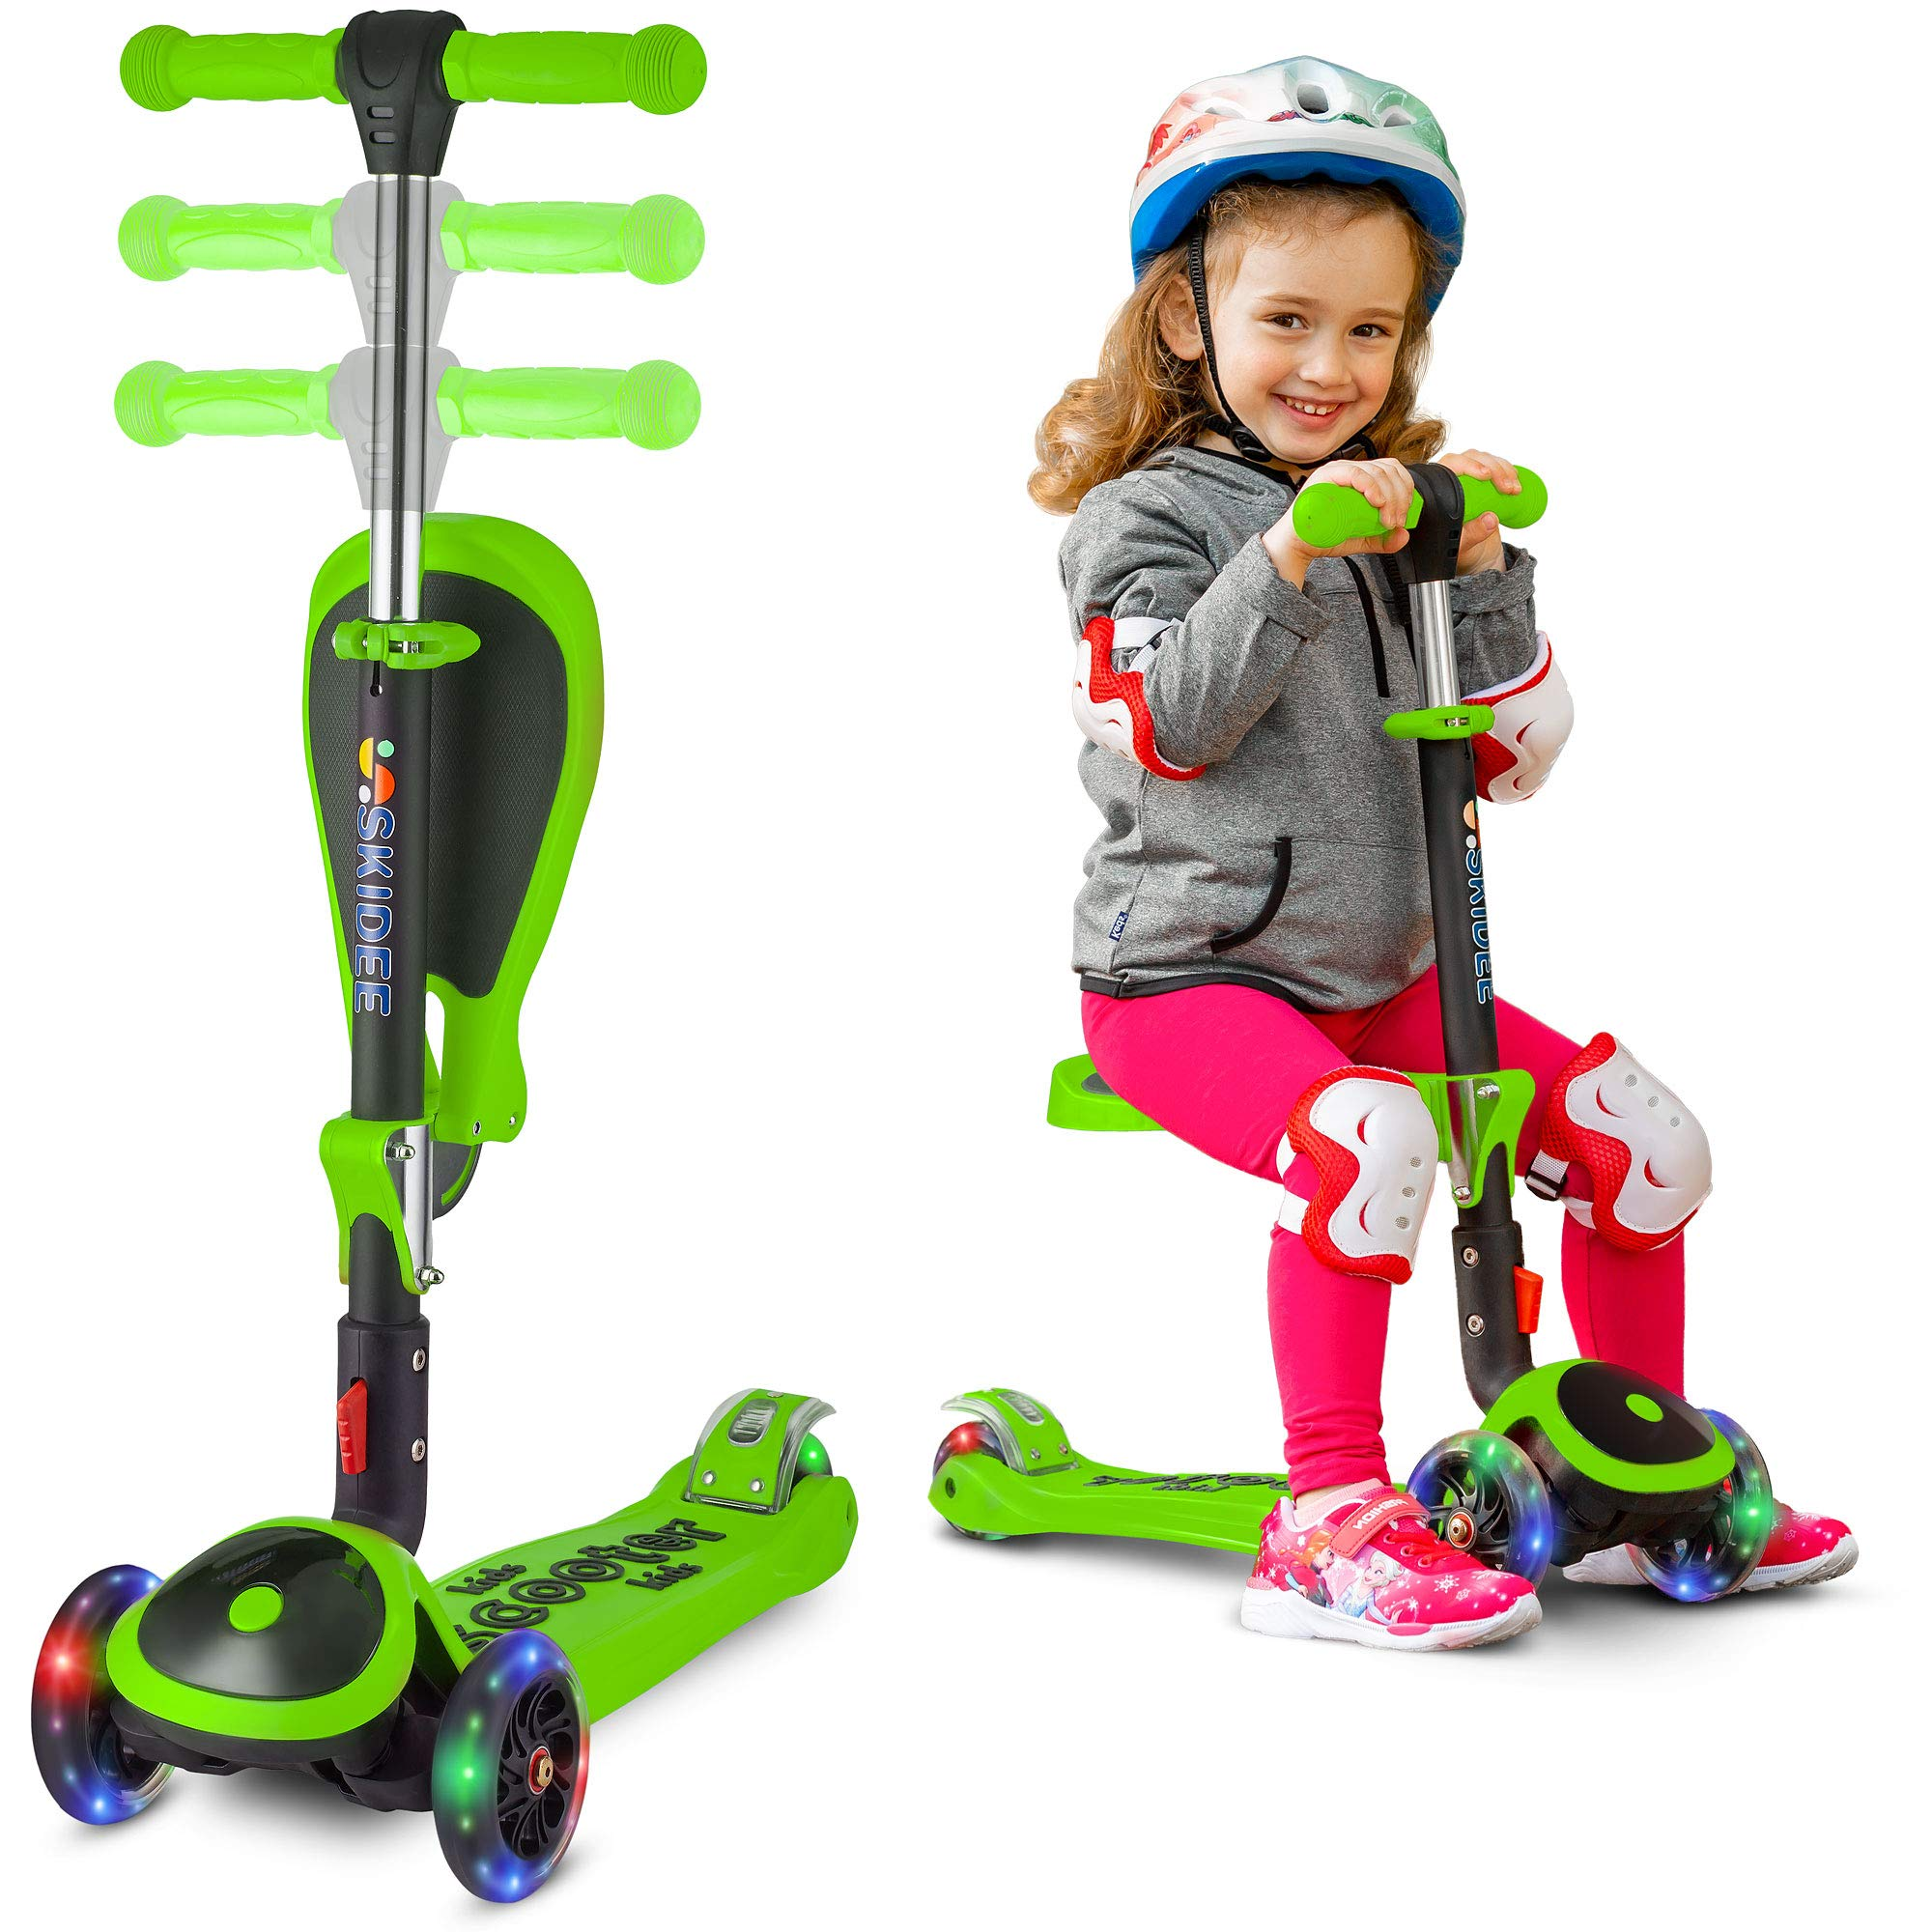 S SKIDEE Scooter for Kids with Folding Seat - 2-in-1Scooter for Kids with Folding/Removable Seat - 2 in 1 Adjustable Height, 3 LED Light Wheels, Kick Scooter for Girls & Boys (Green, Scooter) by S SKIDEE